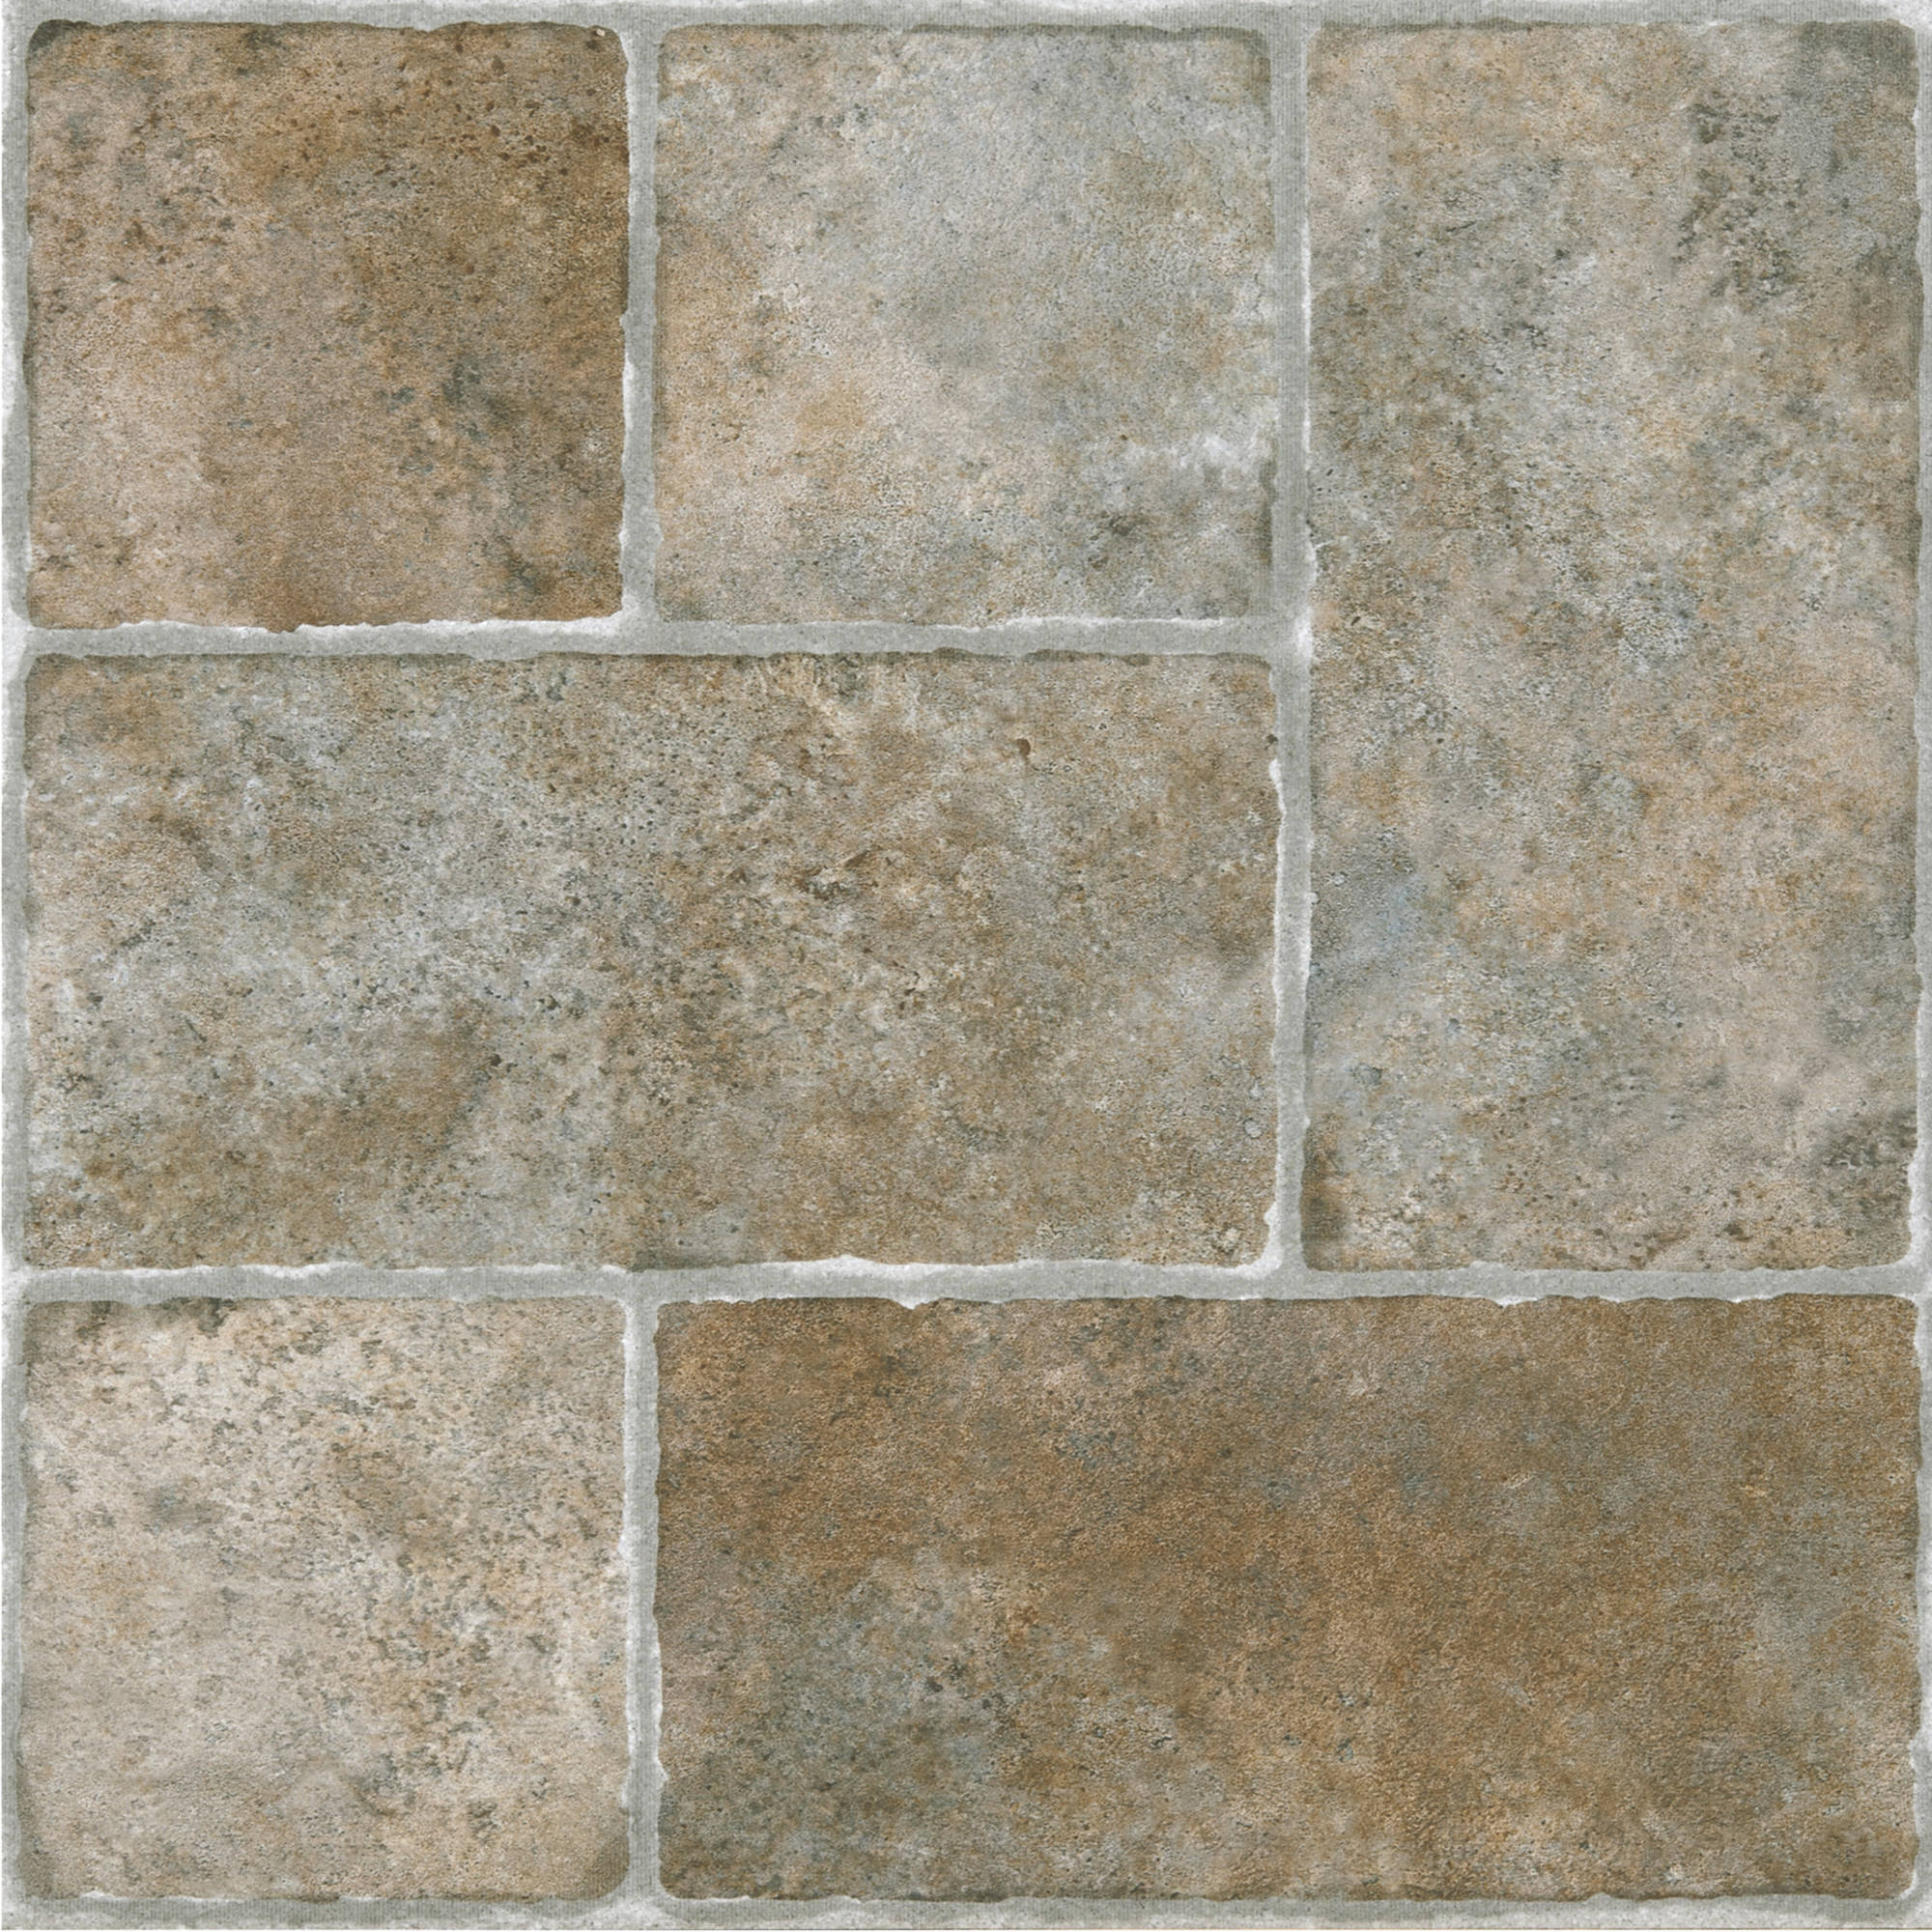 Nexus Quartose Granite 12x12 Self Adhesive Vinyl Floor Tile 20 Tiles Sq Ft